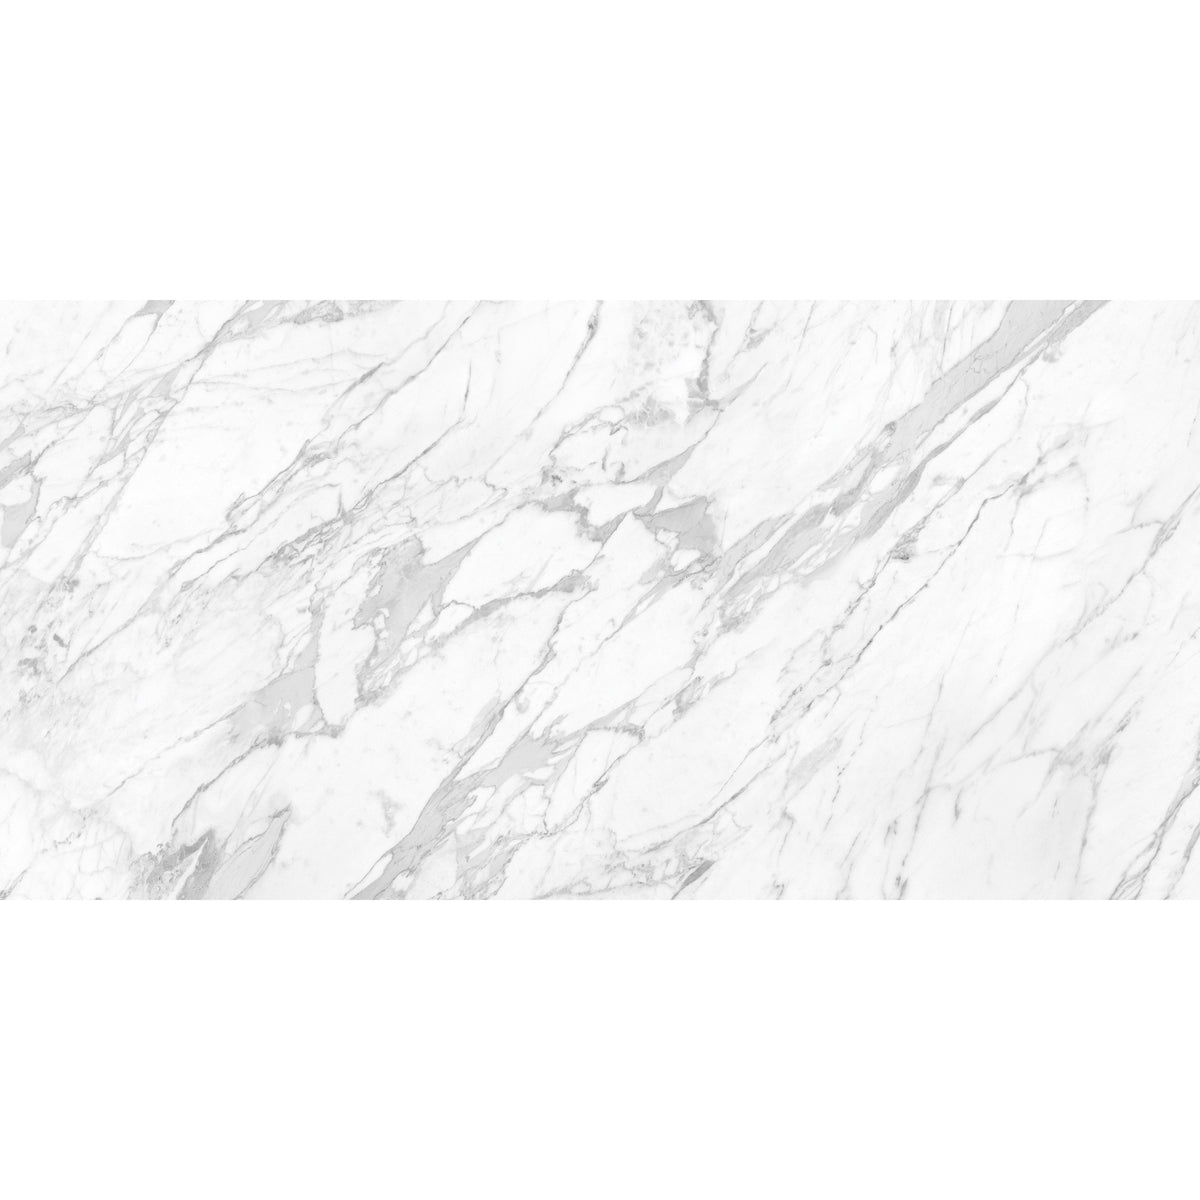 Anatolia - La Marca Glazed Porcelain 24 in. x 48 in. Polished Tile - Statuarietto